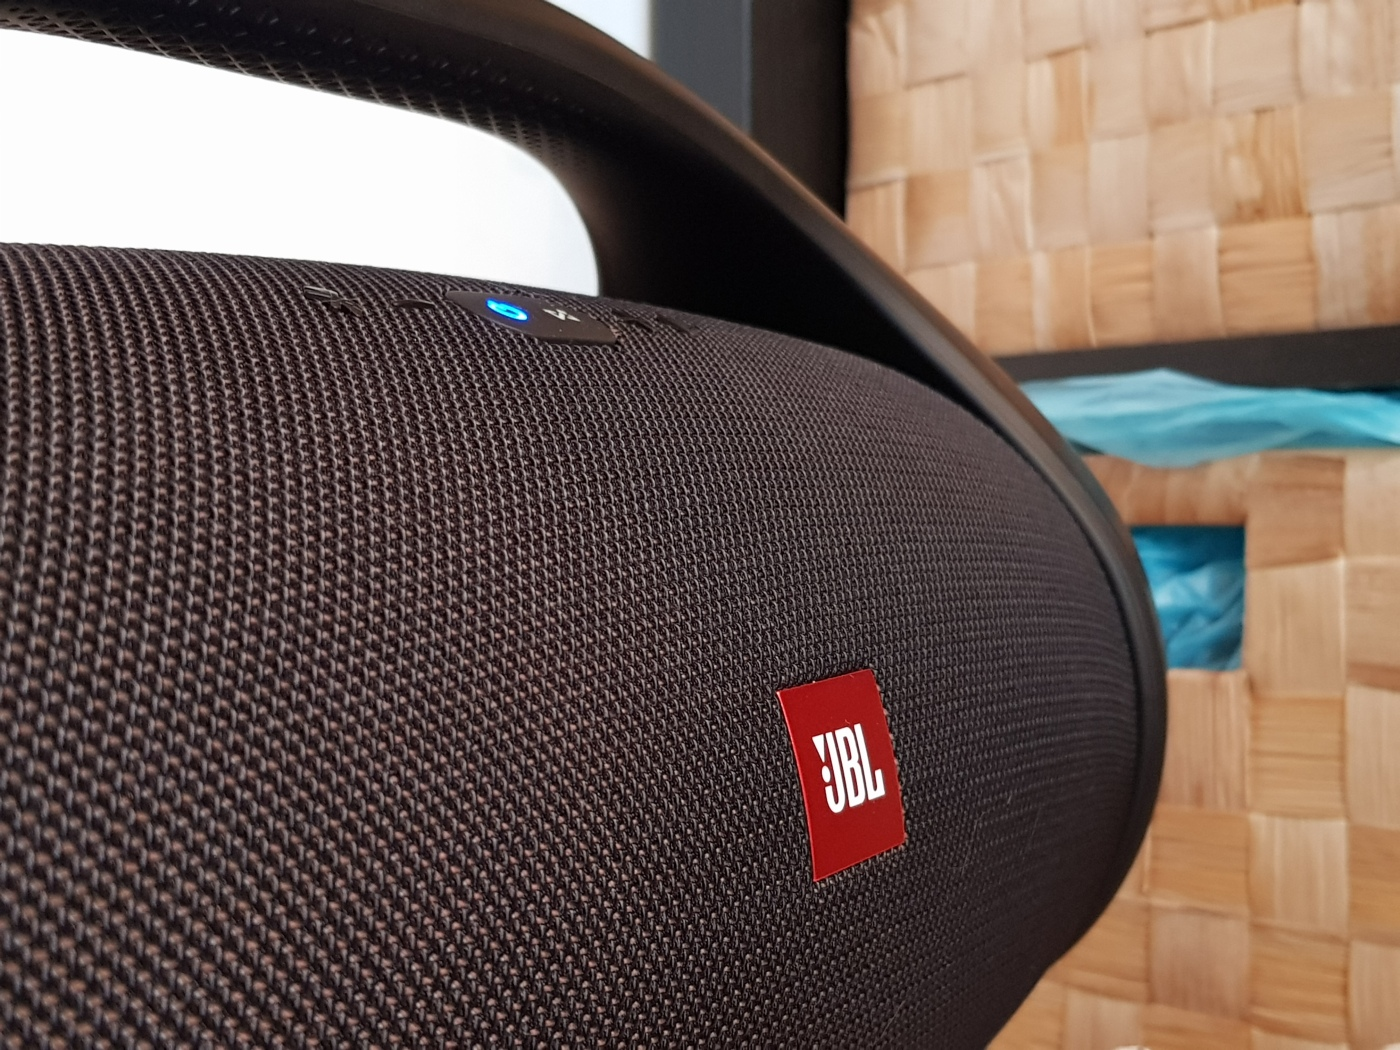 JBL Boombox – What reviewers didn't mention